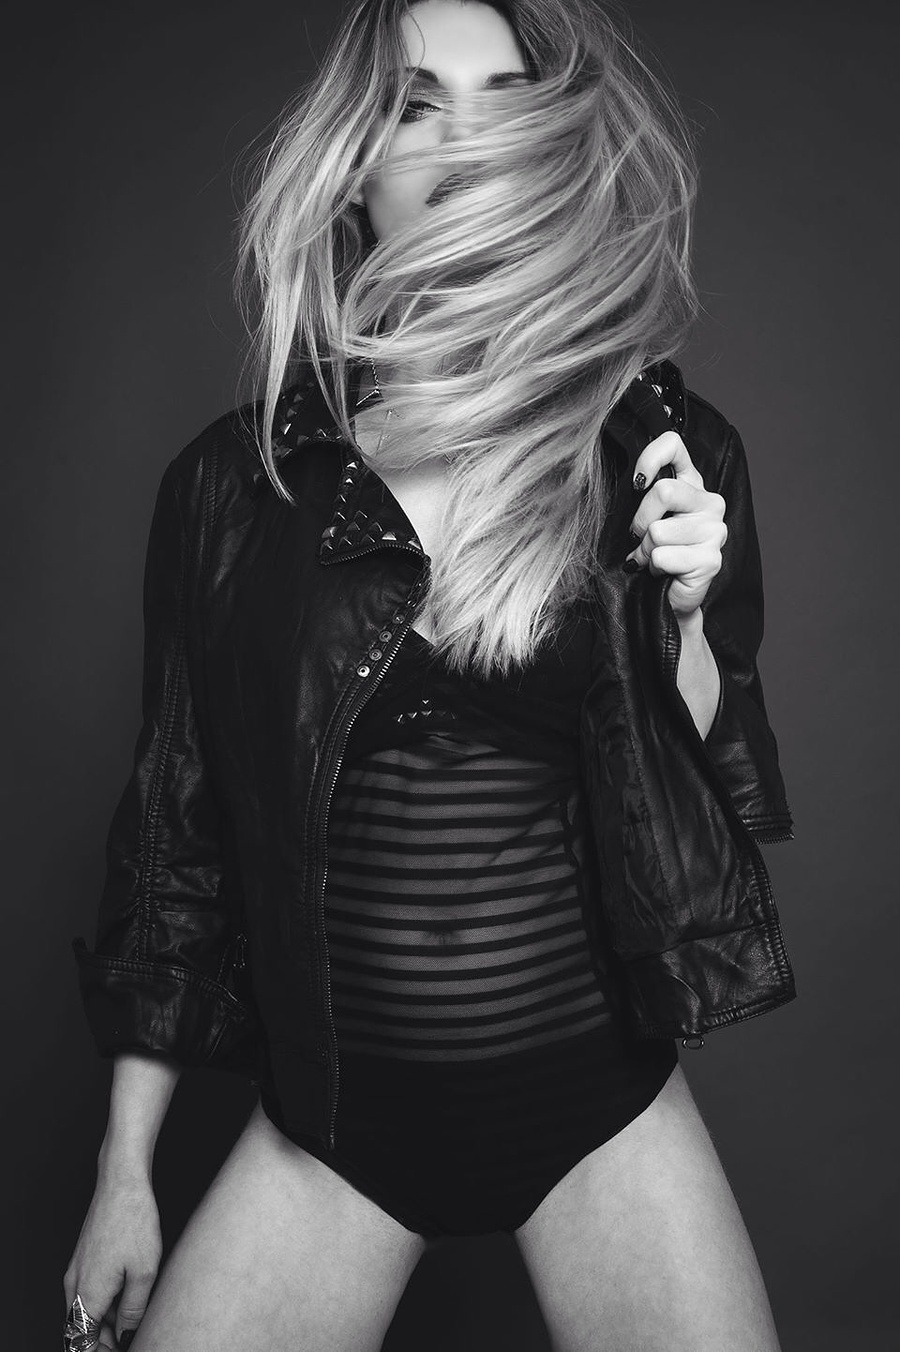 I whip my hair back and forth!  / Photography by NIKKALA ADES PHOTOGRAPHY / Uploaded 28th June 2014 @ 12:07 AM